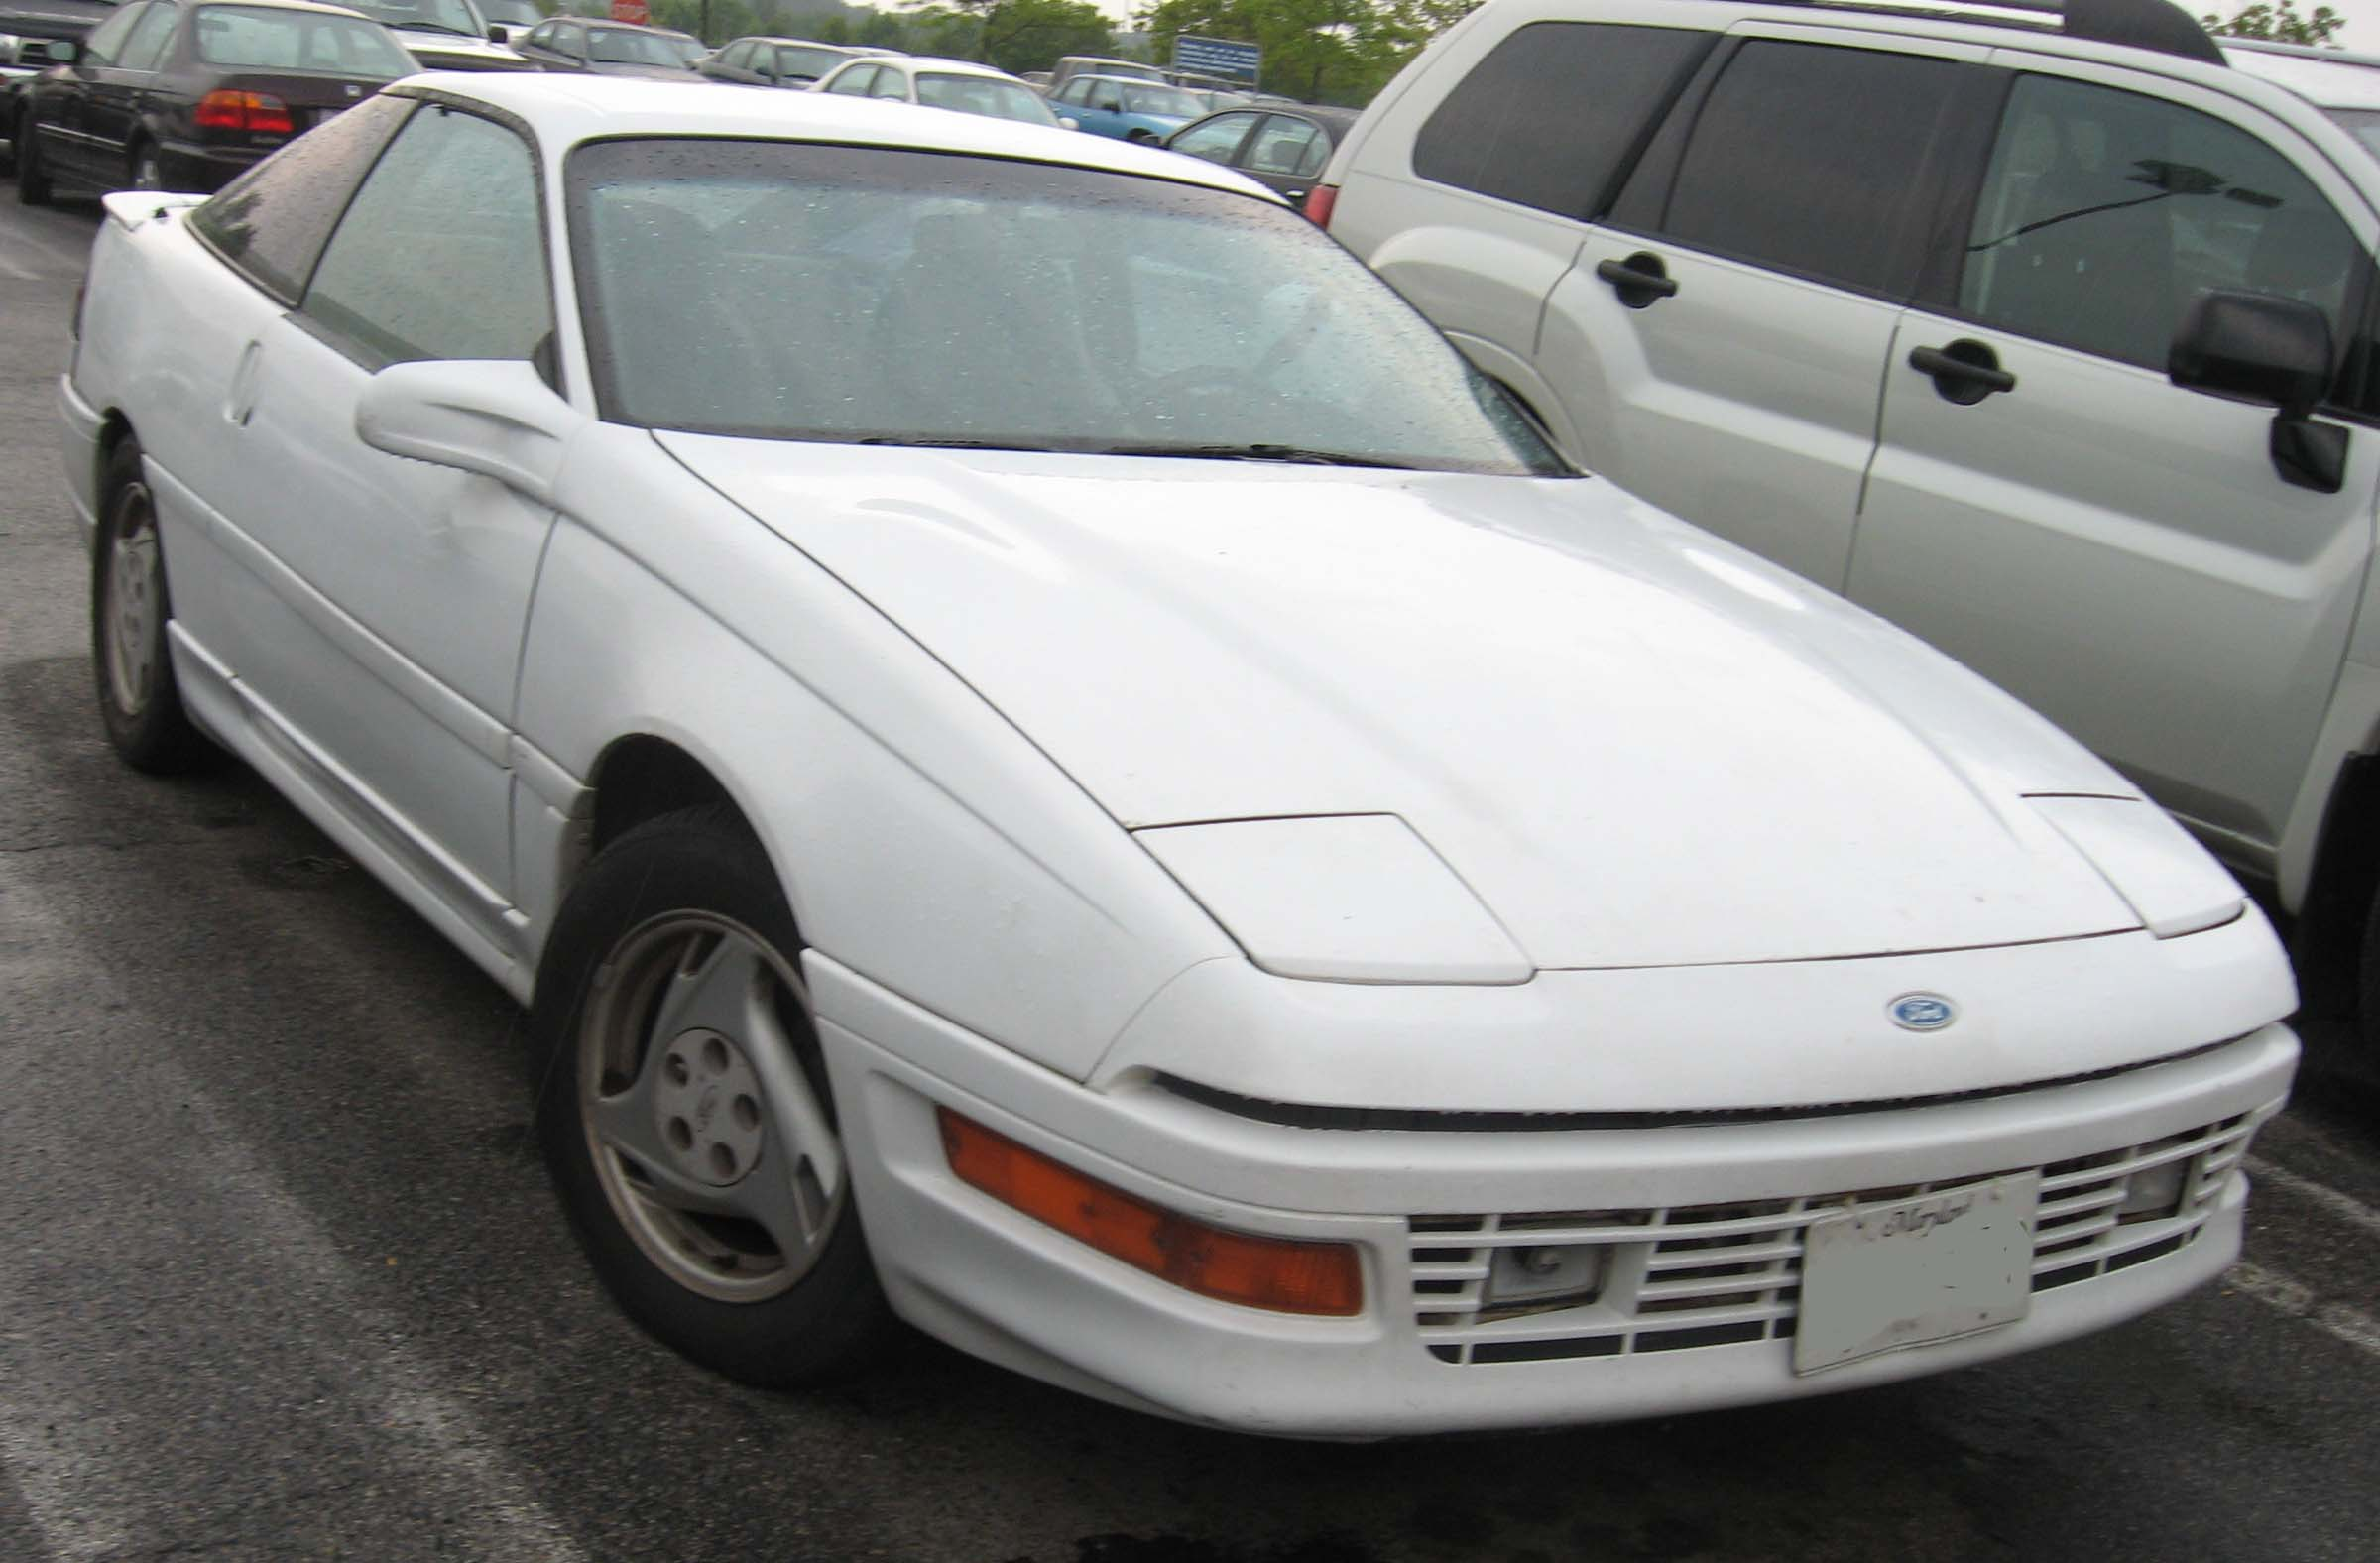 Ford Probe #12